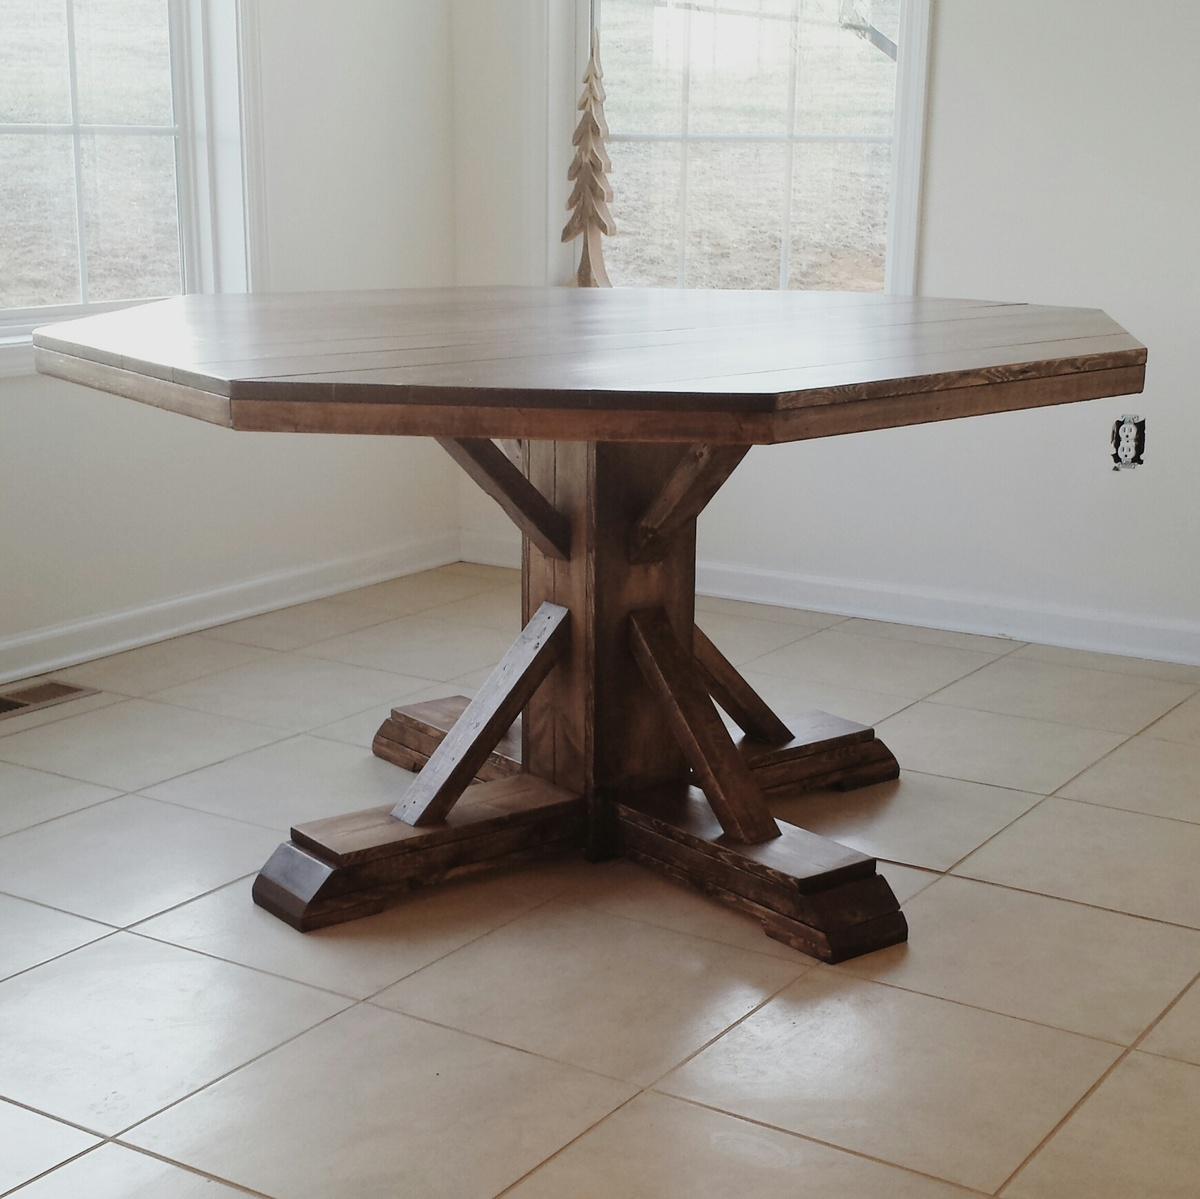 Breakfast Nook Table - DIY Projects